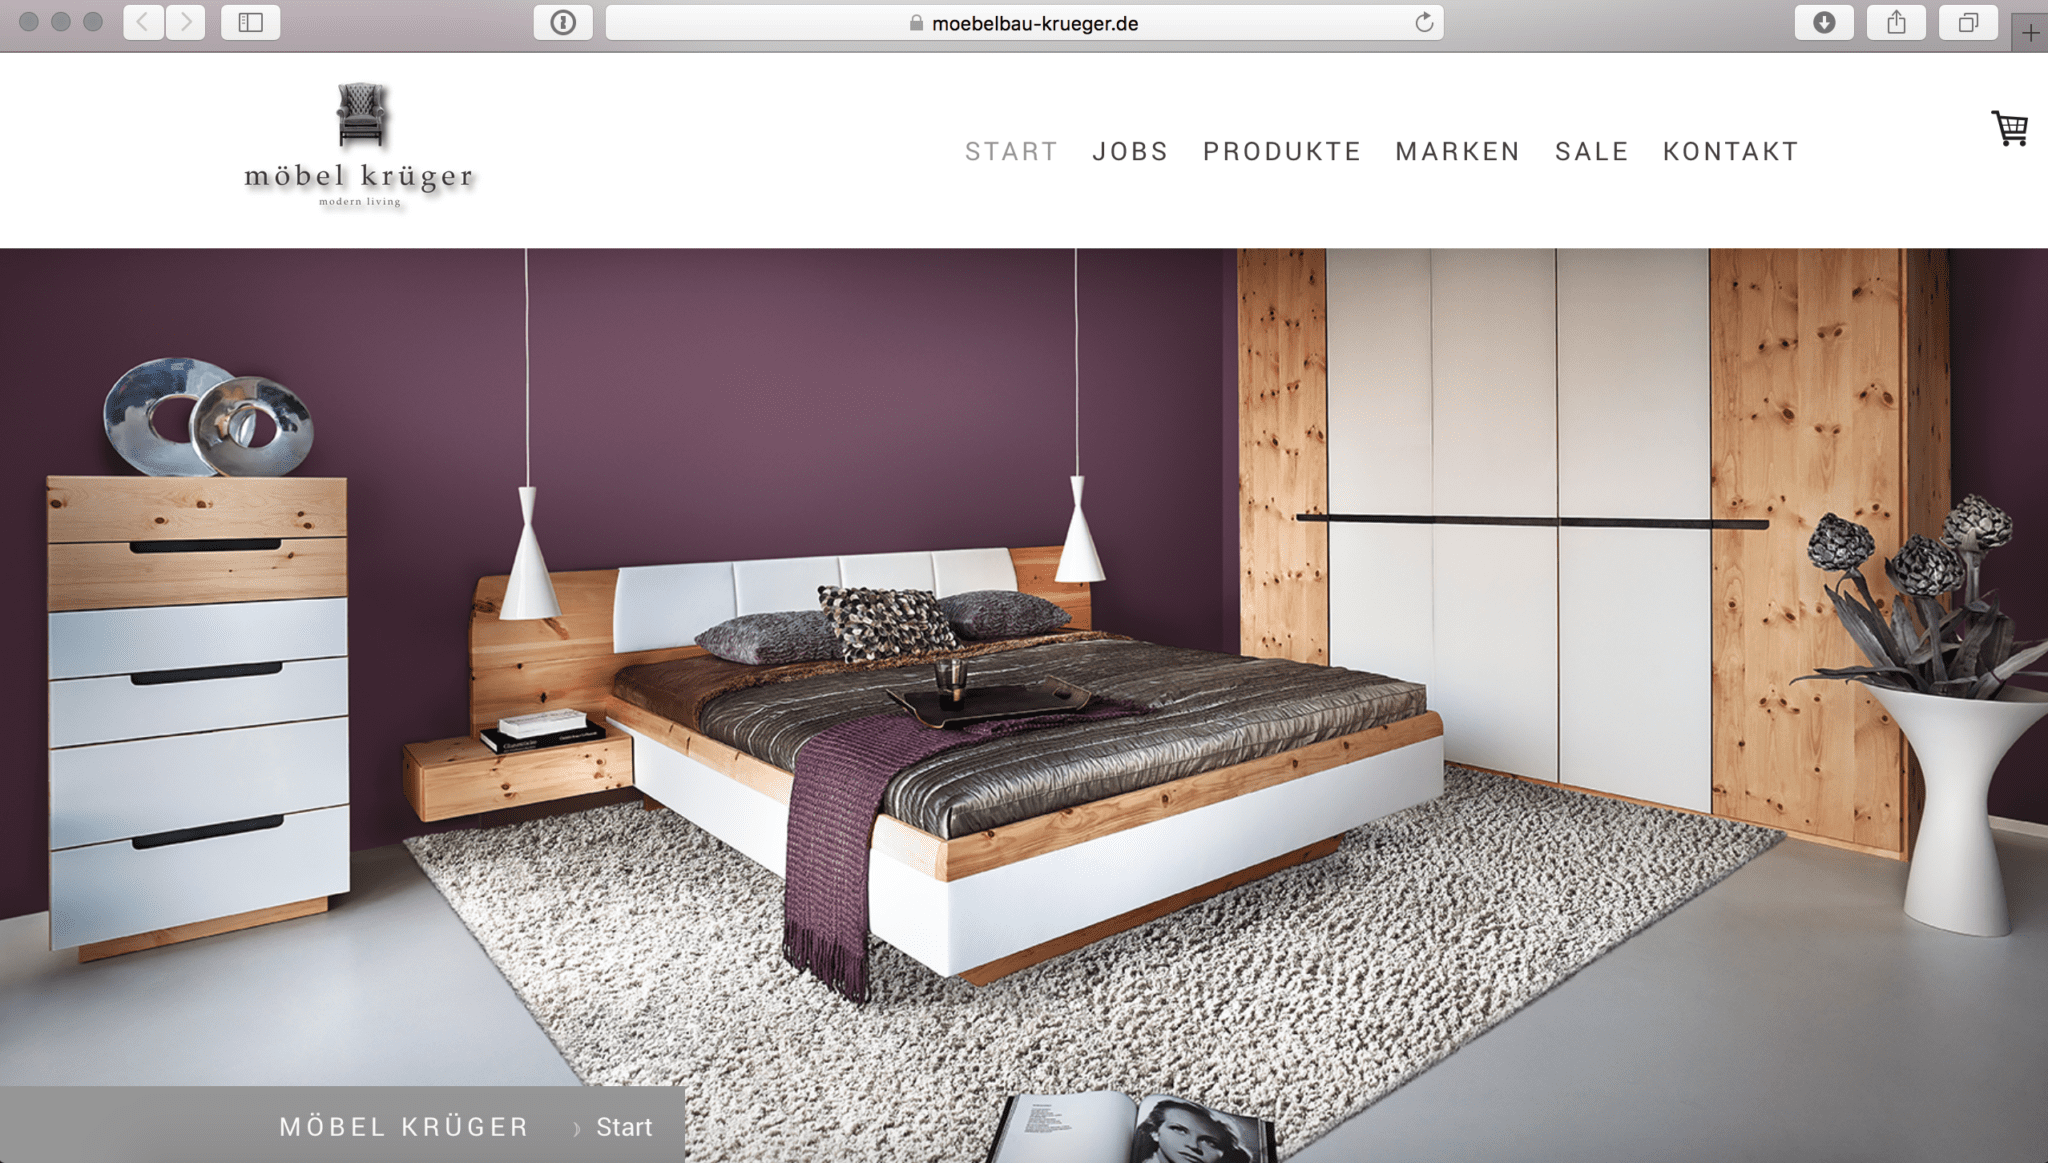 web design archive seite 2 von 3 herzwerk marketing. Black Bedroom Furniture Sets. Home Design Ideas